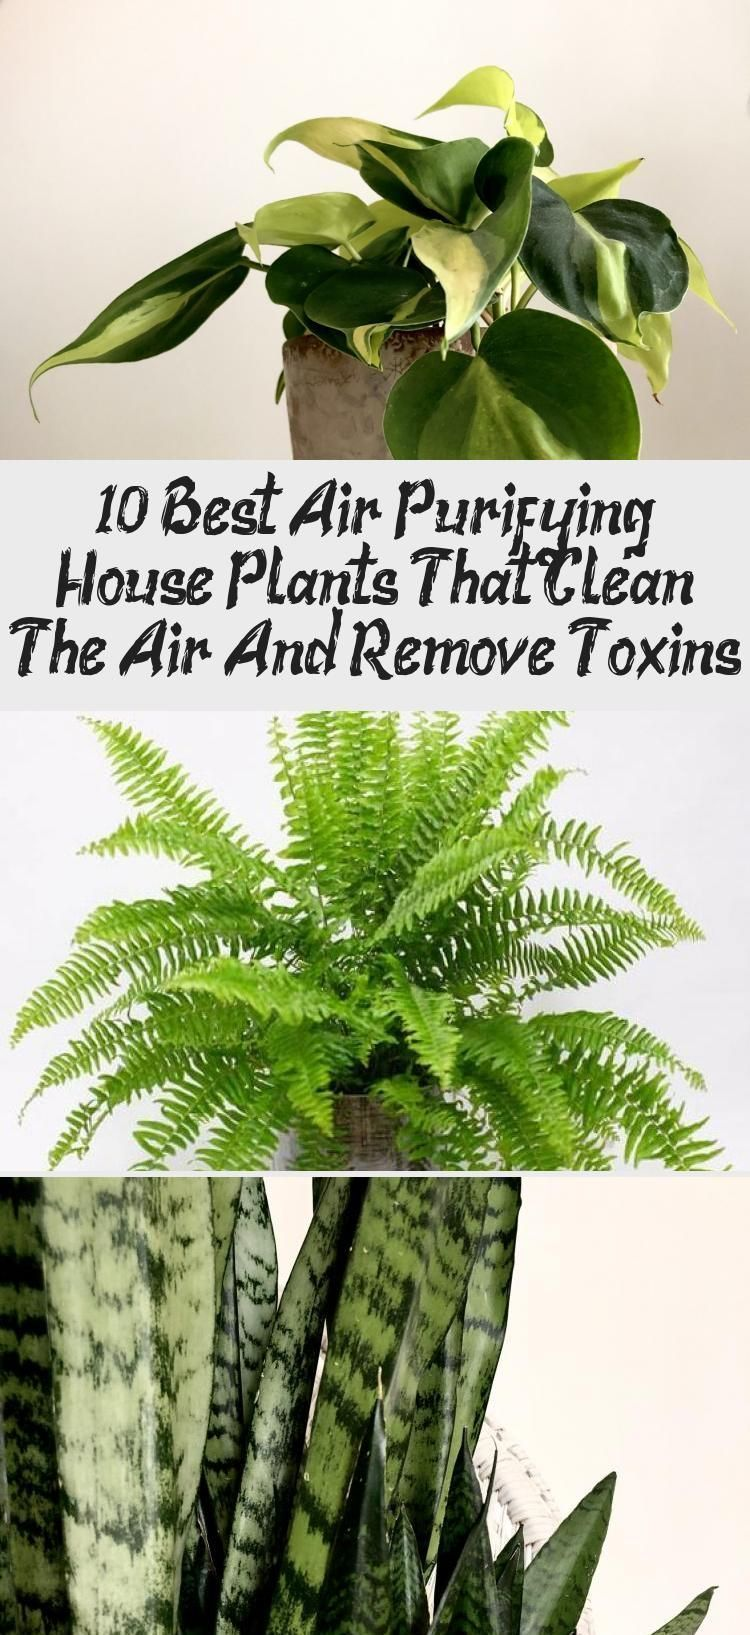 10 Best Air Purifying House Plants That Clean The Air And ...